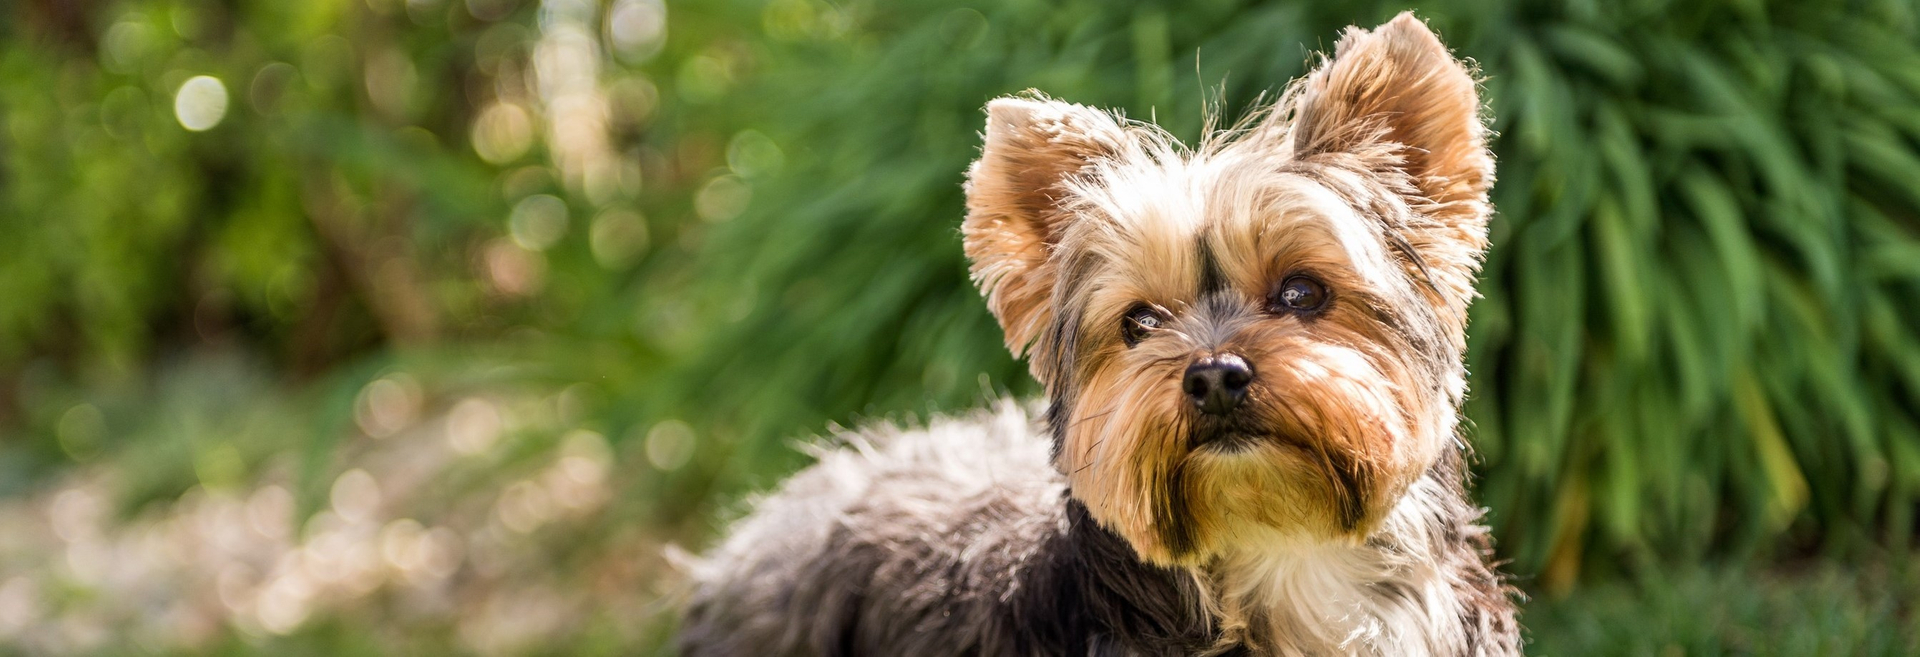 A portrait of a Yorkshire Terrier.